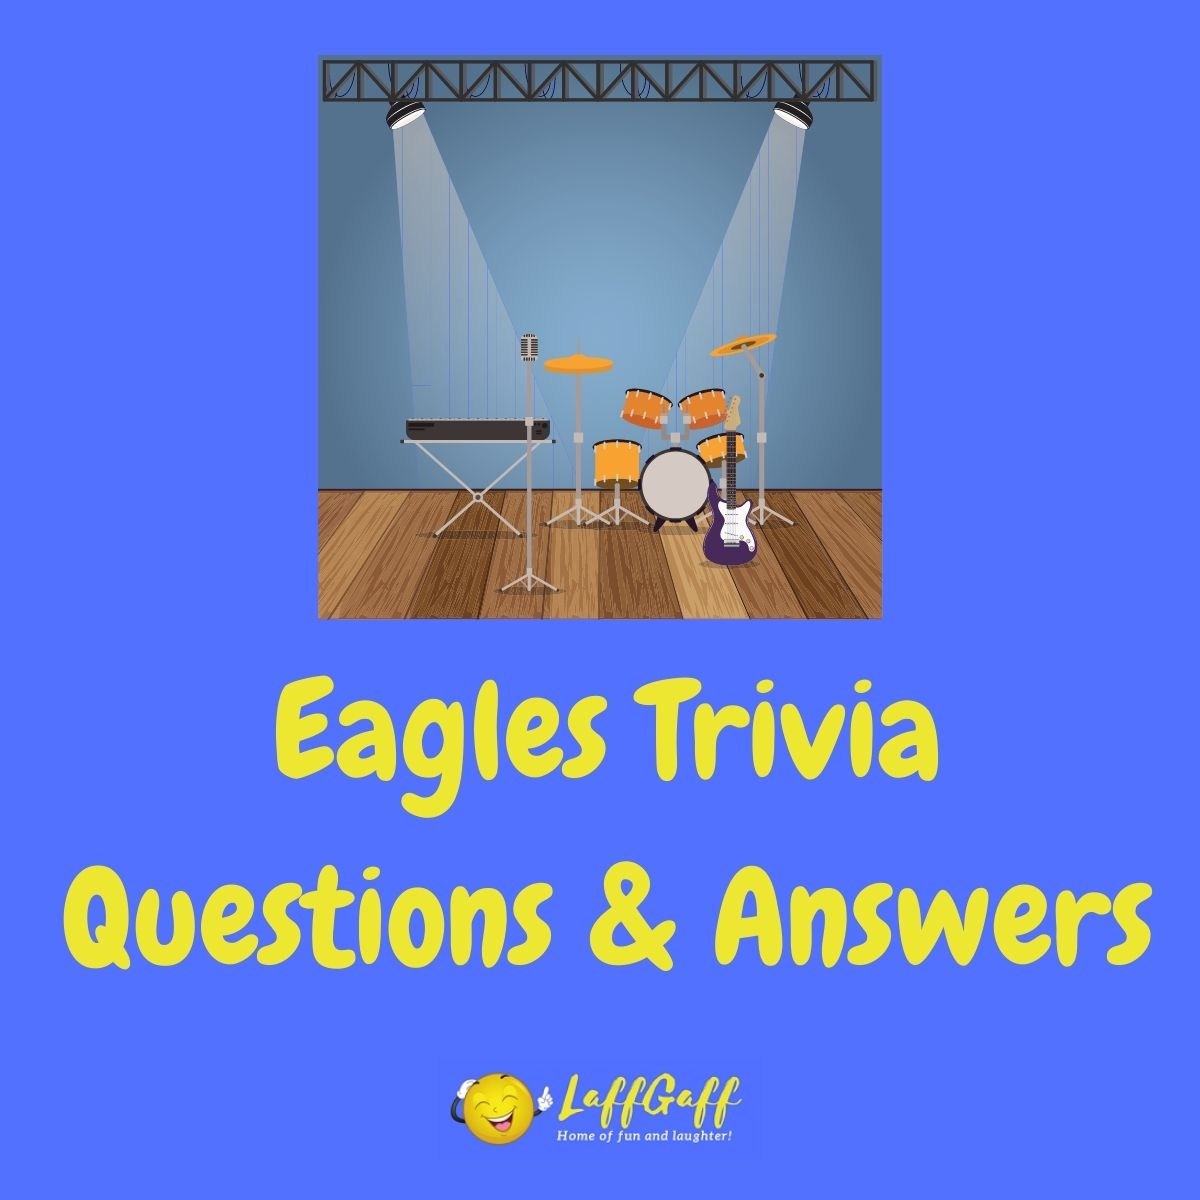 Featured image for a page of Eagles trivia questions and answers.